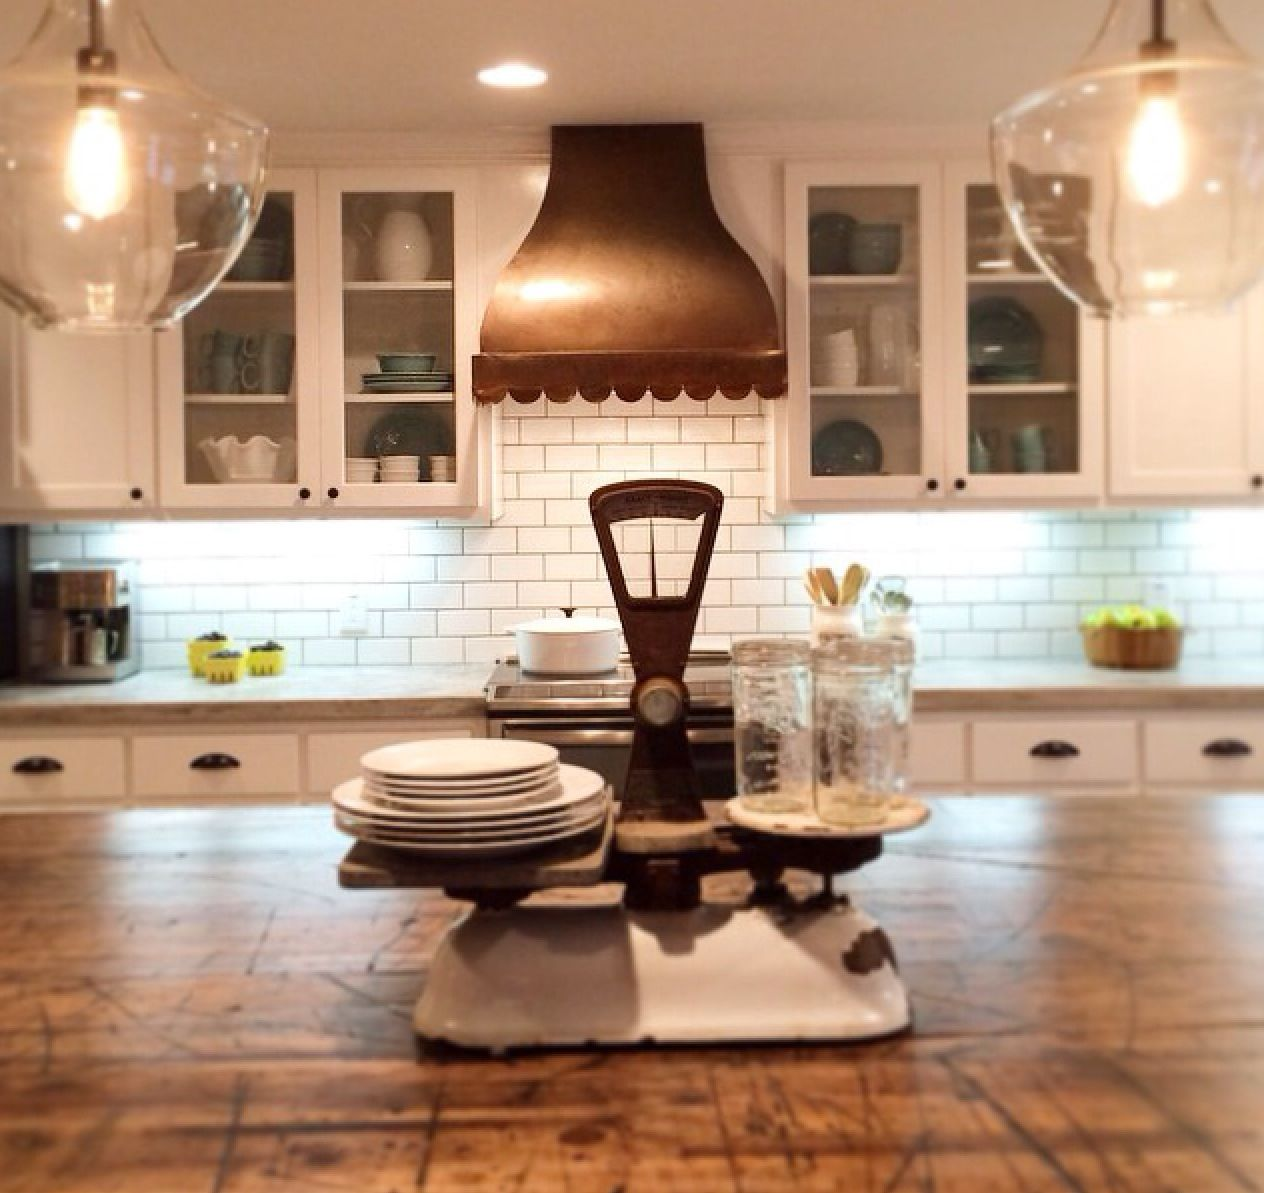 Urban Country Kitchen: Fixer Upper Have You Ever Seen A